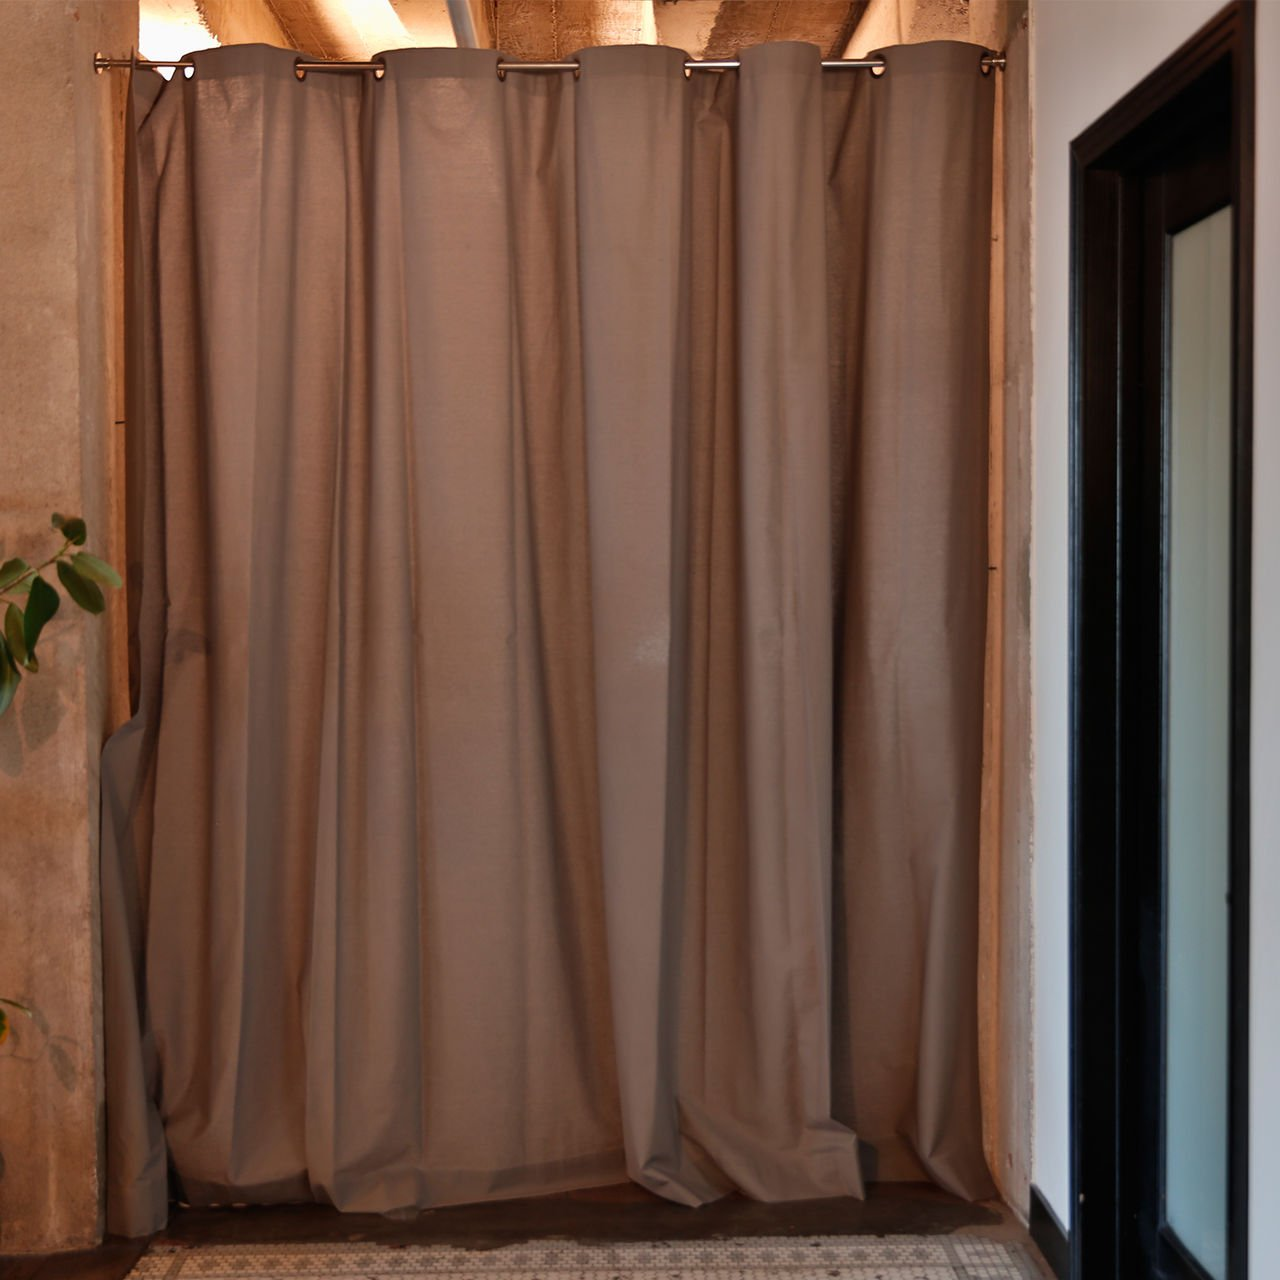 Portable privacy curtains - Amazon Com Roomdividersnow Muslin Room Divider Curtain 8ft Tall X 10ft Wide Gray Kitchen Dining